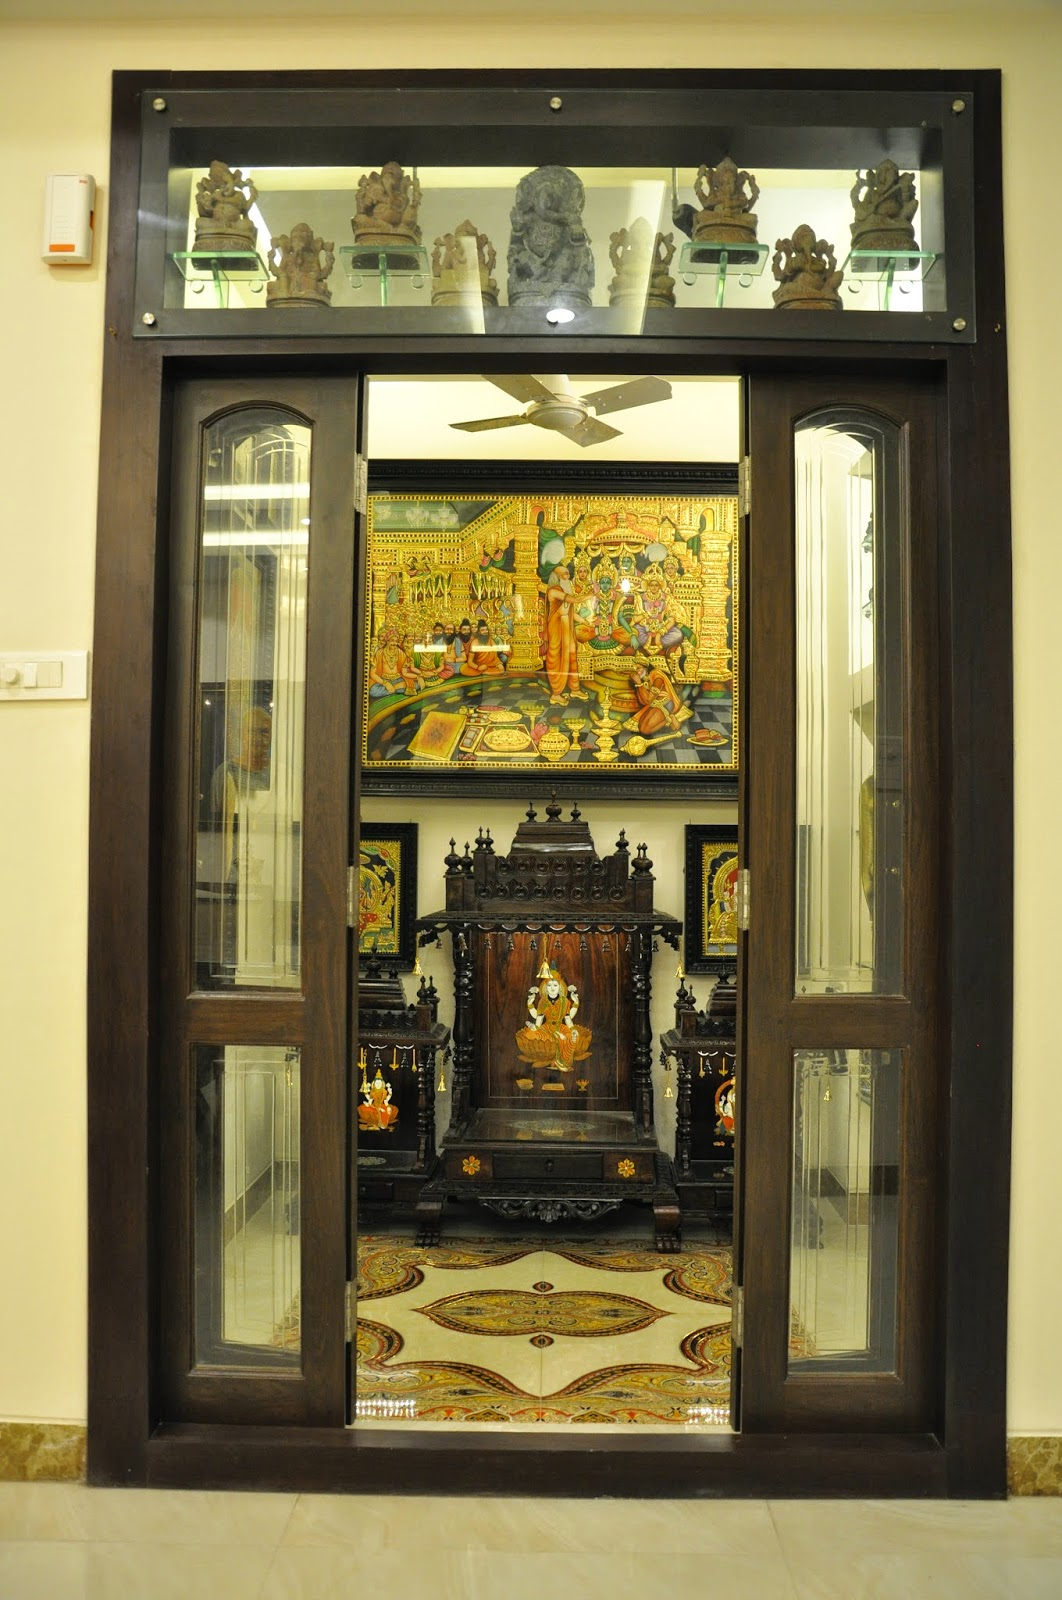 9 Traditional Pooja Room Door Designs In 2020: Koncept Living Interior Concepts: Konceptliving Pooja Room